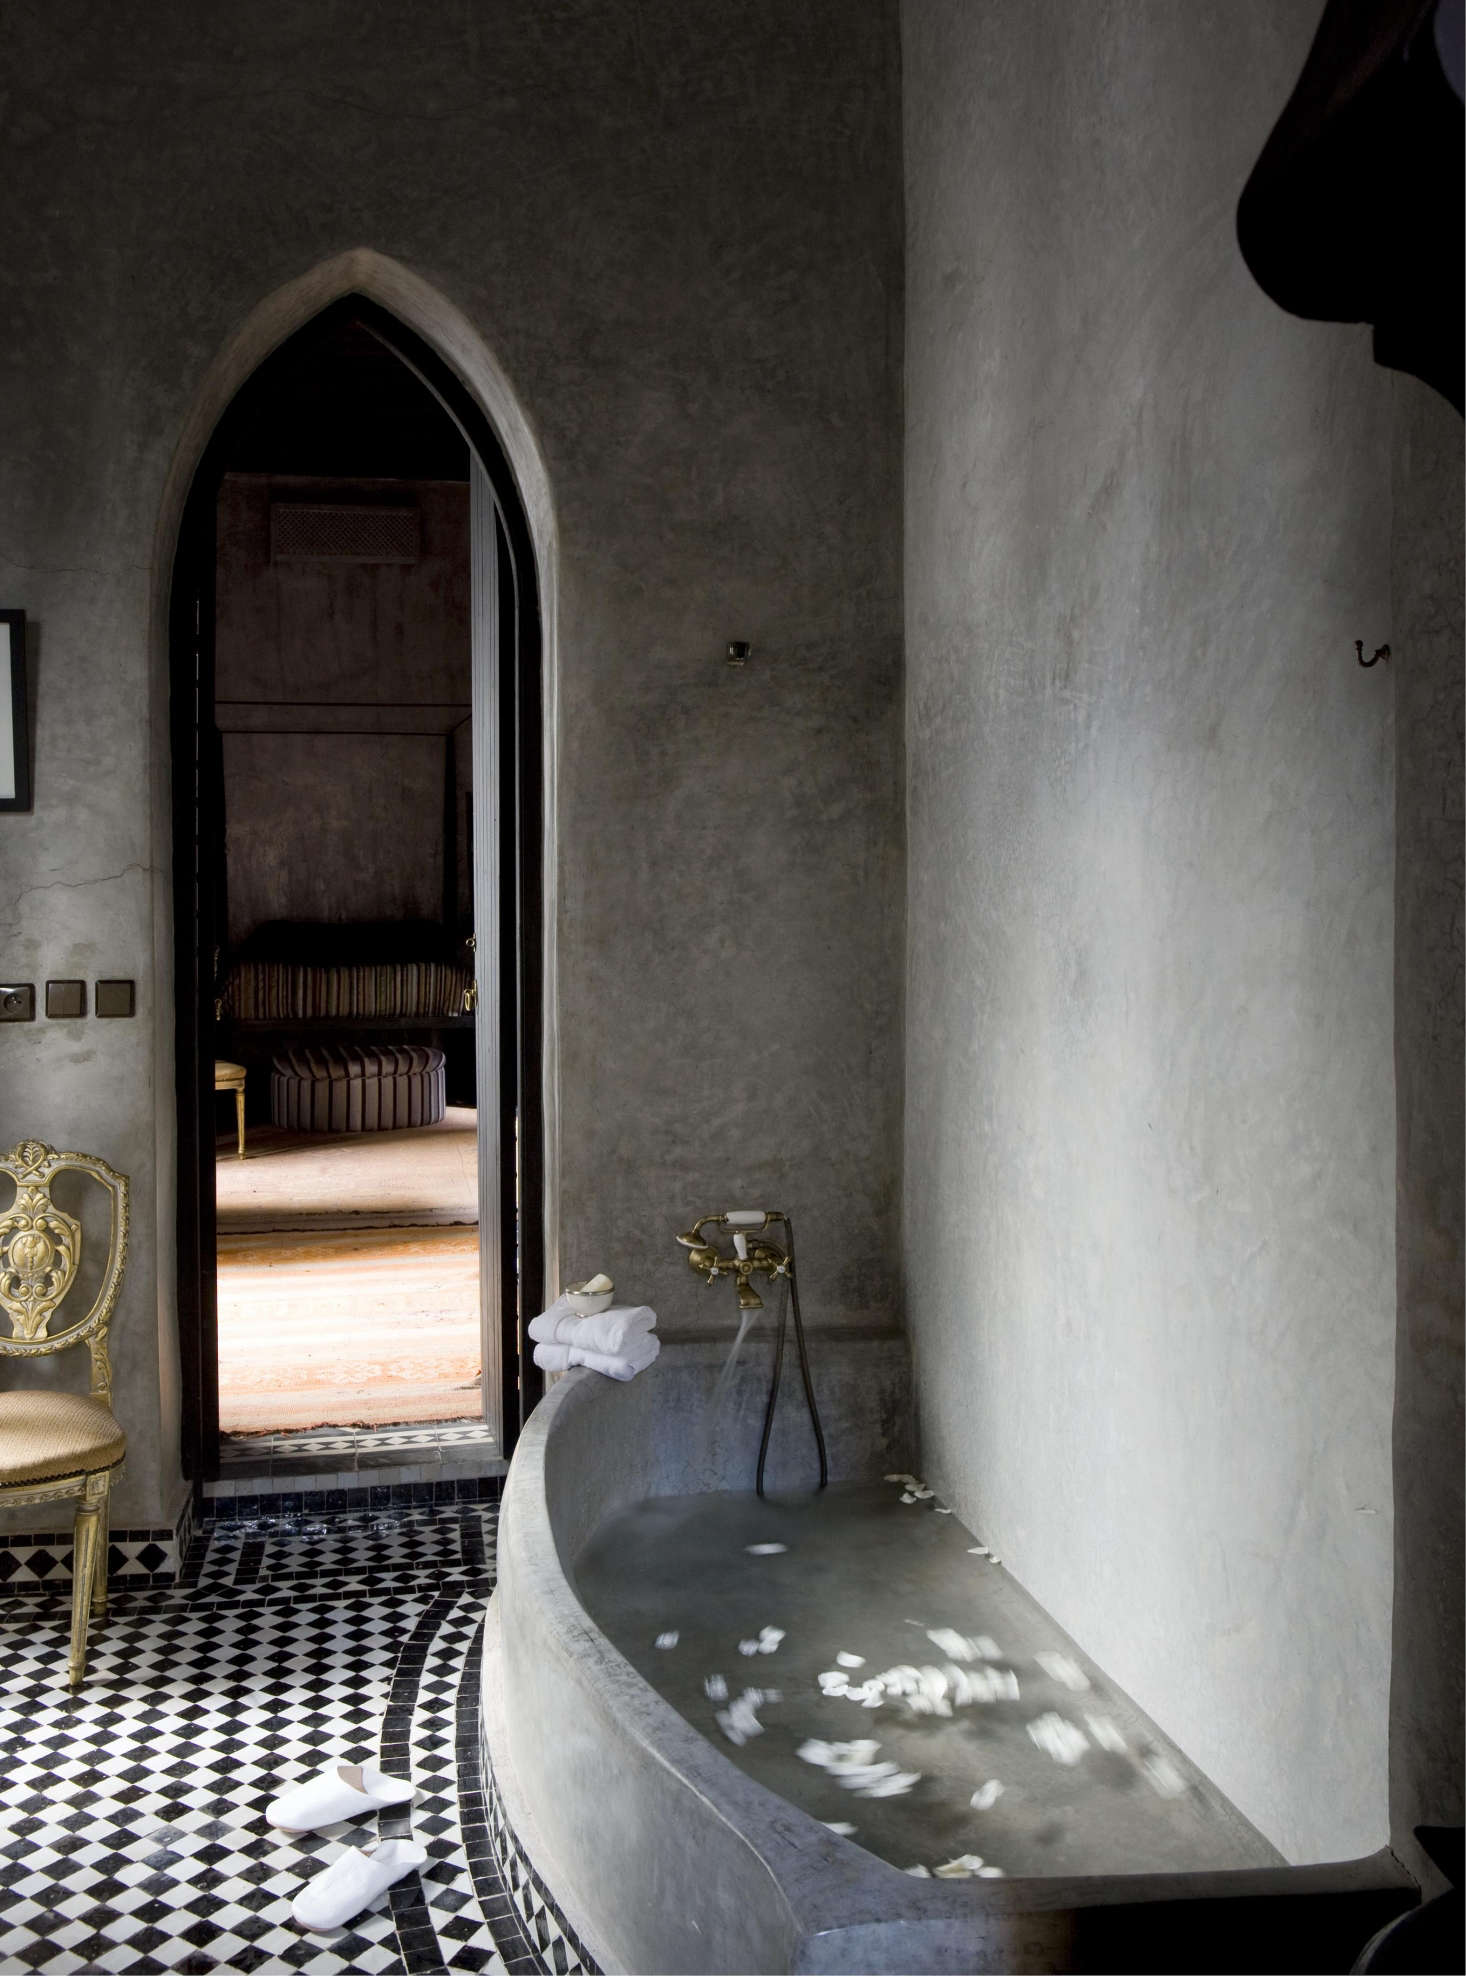 Riad in Marrakech, Morocco by Stefania Giorgi Photography